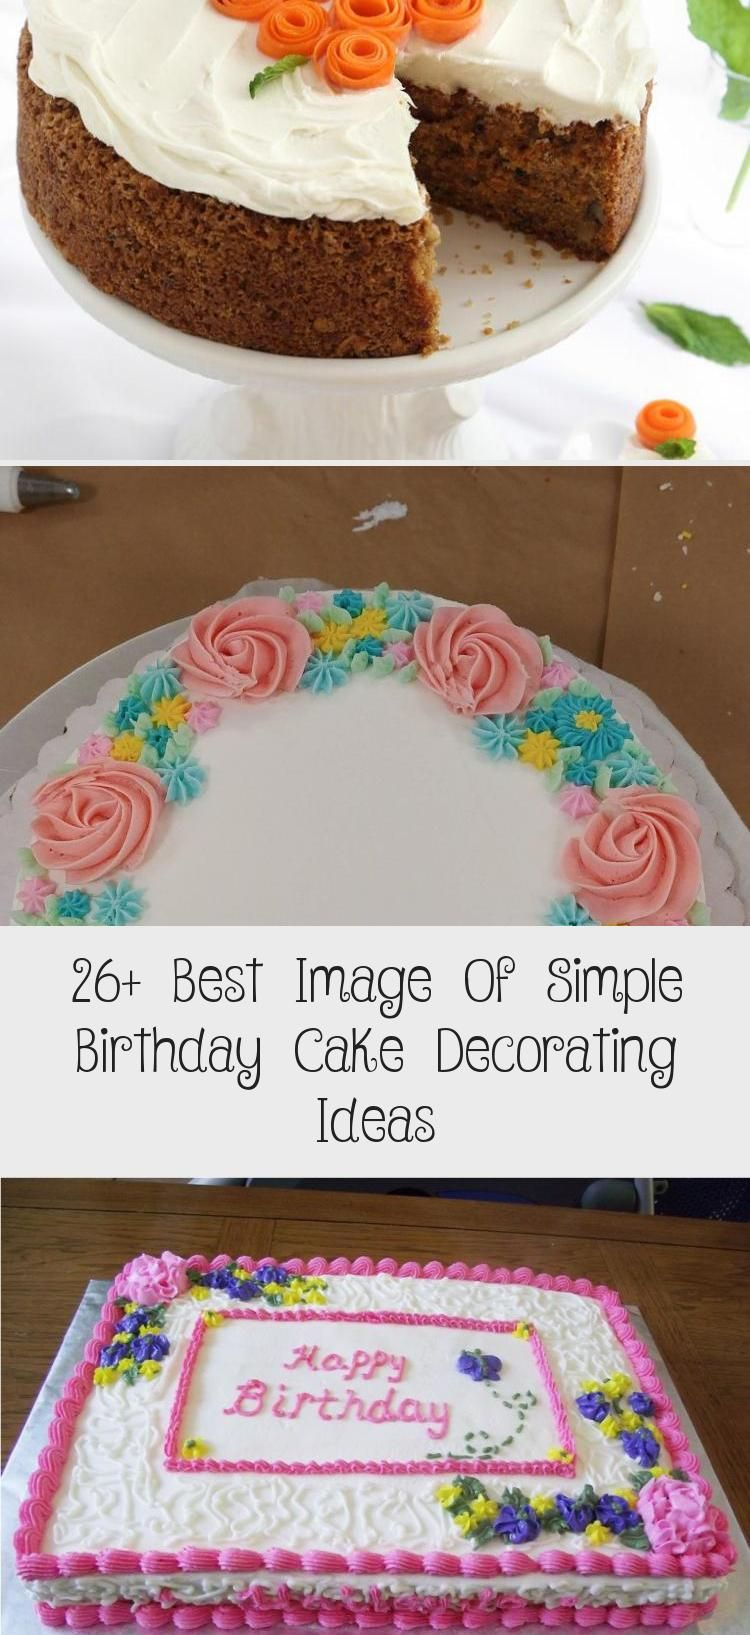 Surprising 26 Best Image Of Simple Birthday Cake Decorating Ideas Simple Personalised Birthday Cards Epsylily Jamesorg